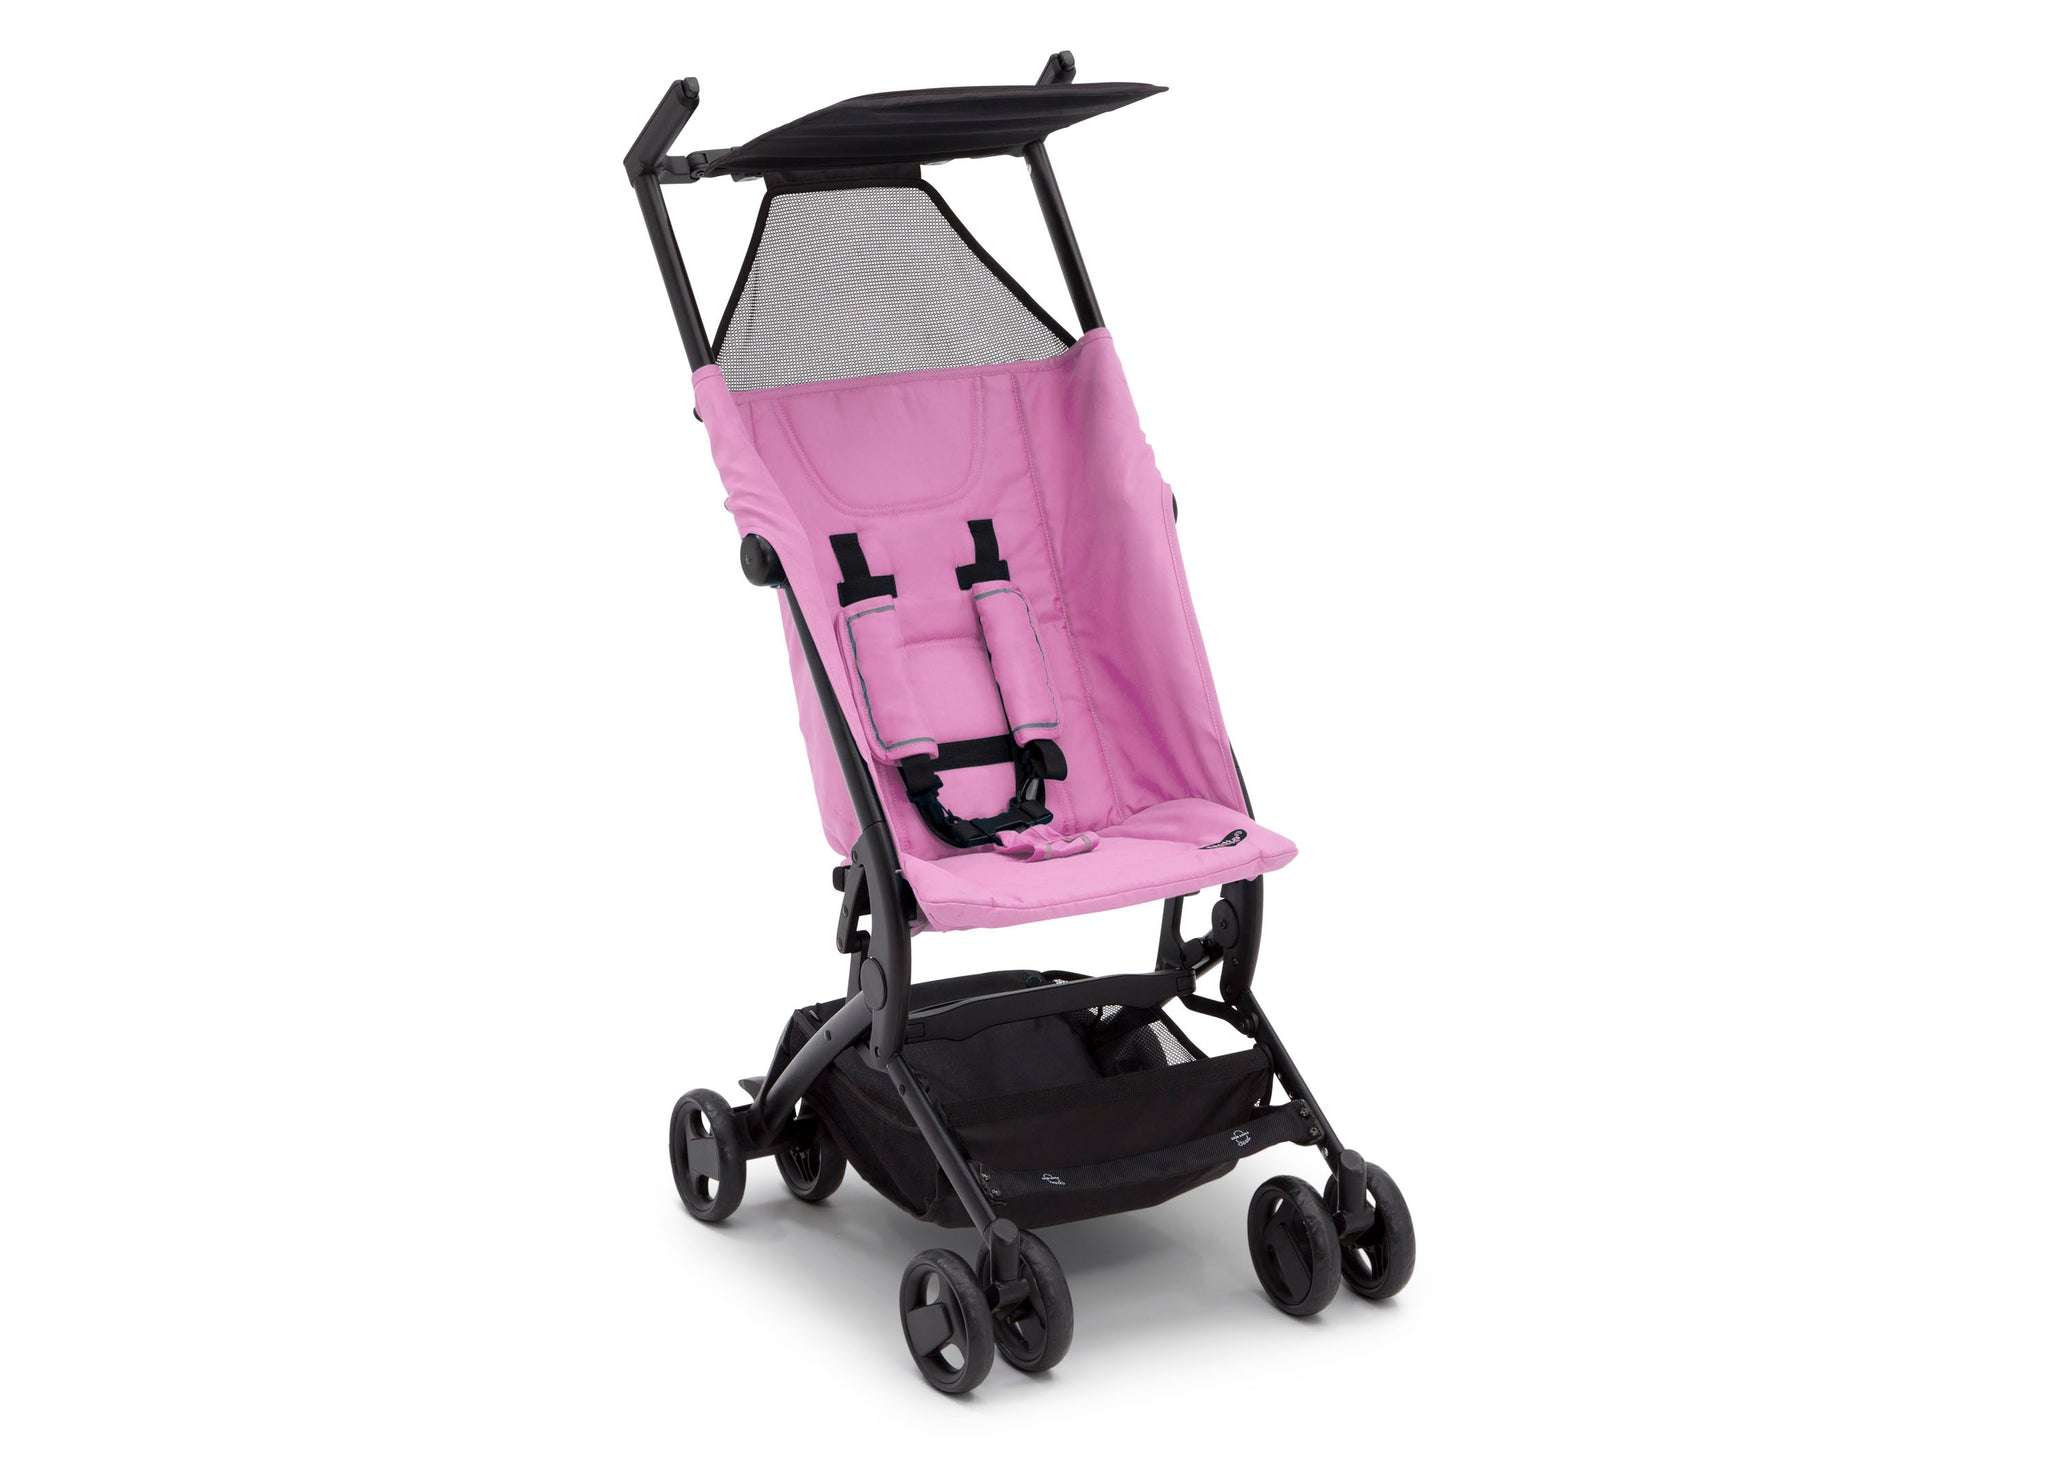 Delta Children Ultimate Fold N Go Compact Travel Stroller Pink (2021), Right Side View b3b